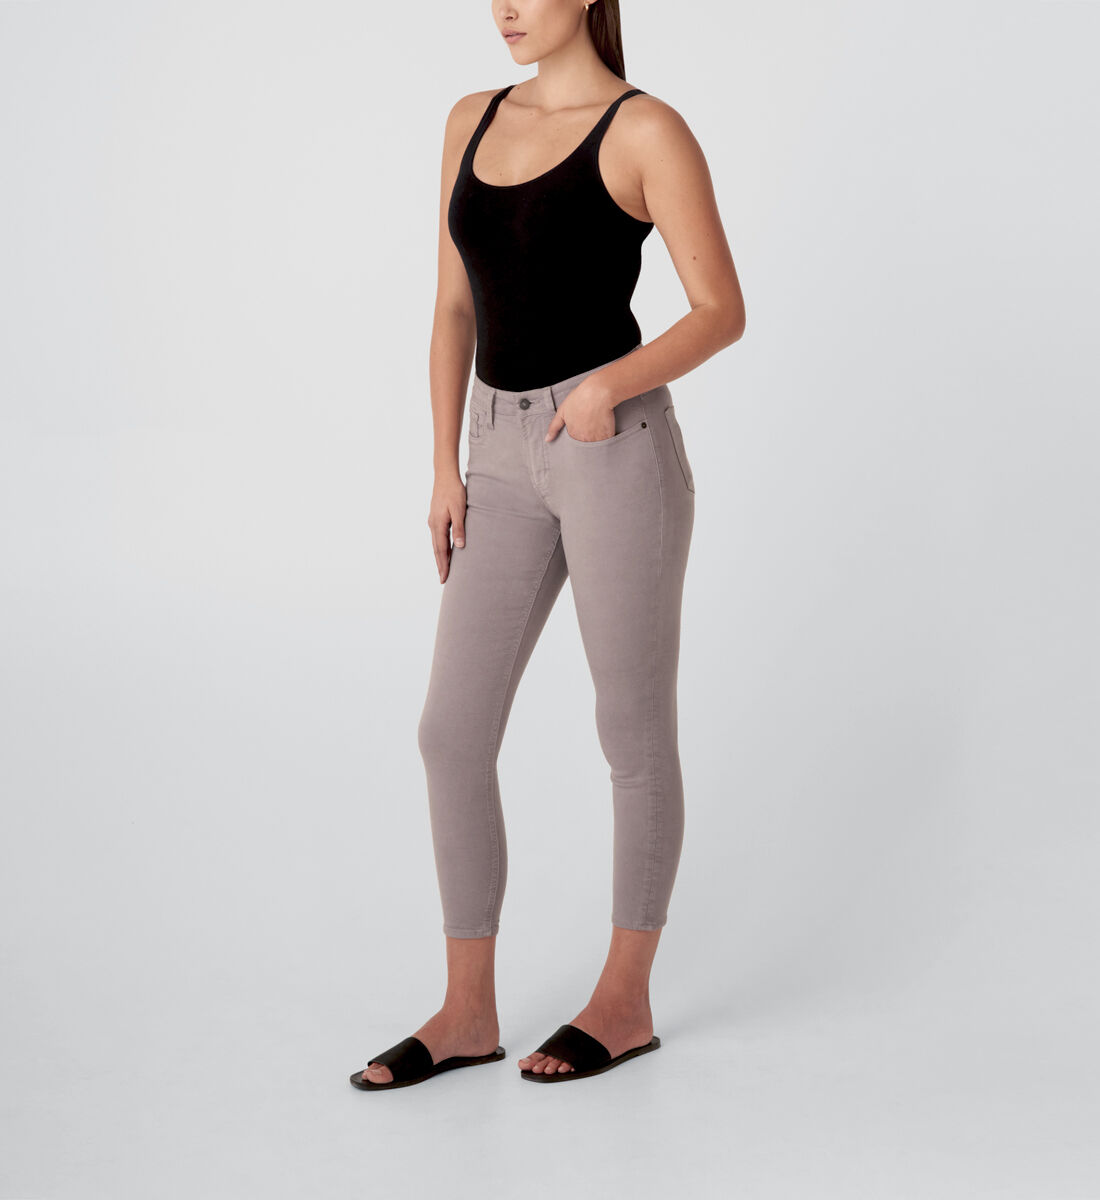 Most Wanted Mid Rise Skinny Jeans,Grey Side